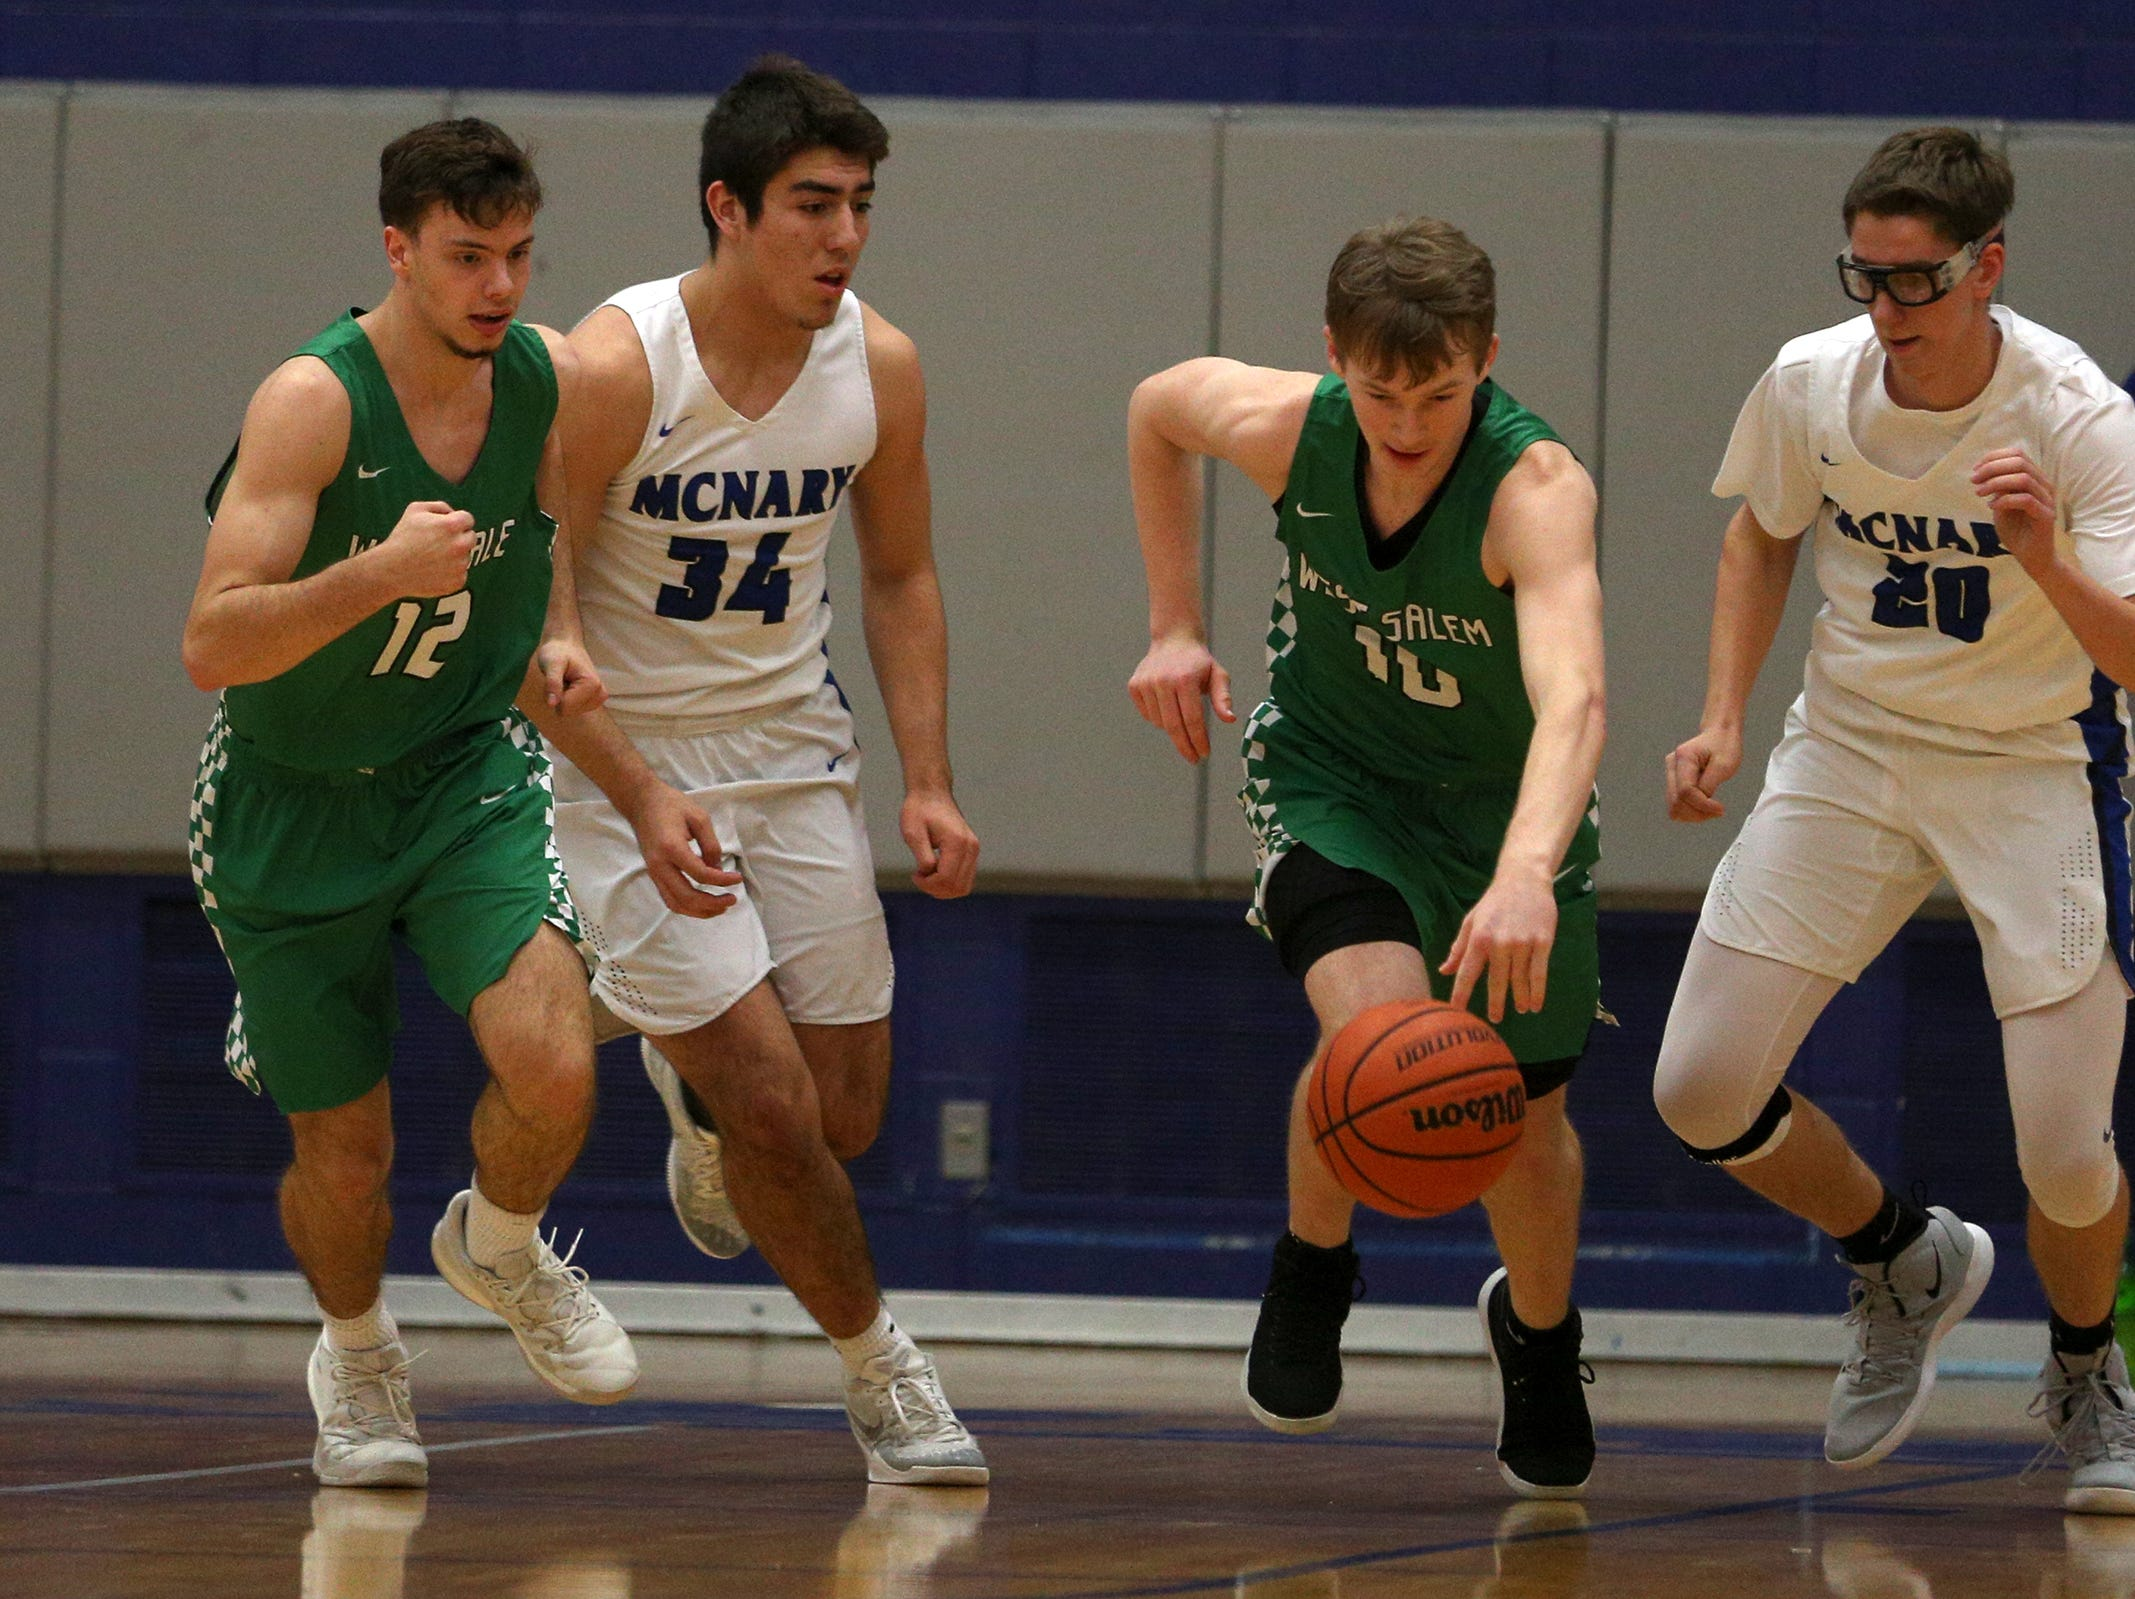 West Salem's Justin Scoggin (10) dribbles across the court during the McNary boys basketball vs. West Salem game at McNary High School in Keizer on Wednesday, Feb. 6, 2019.